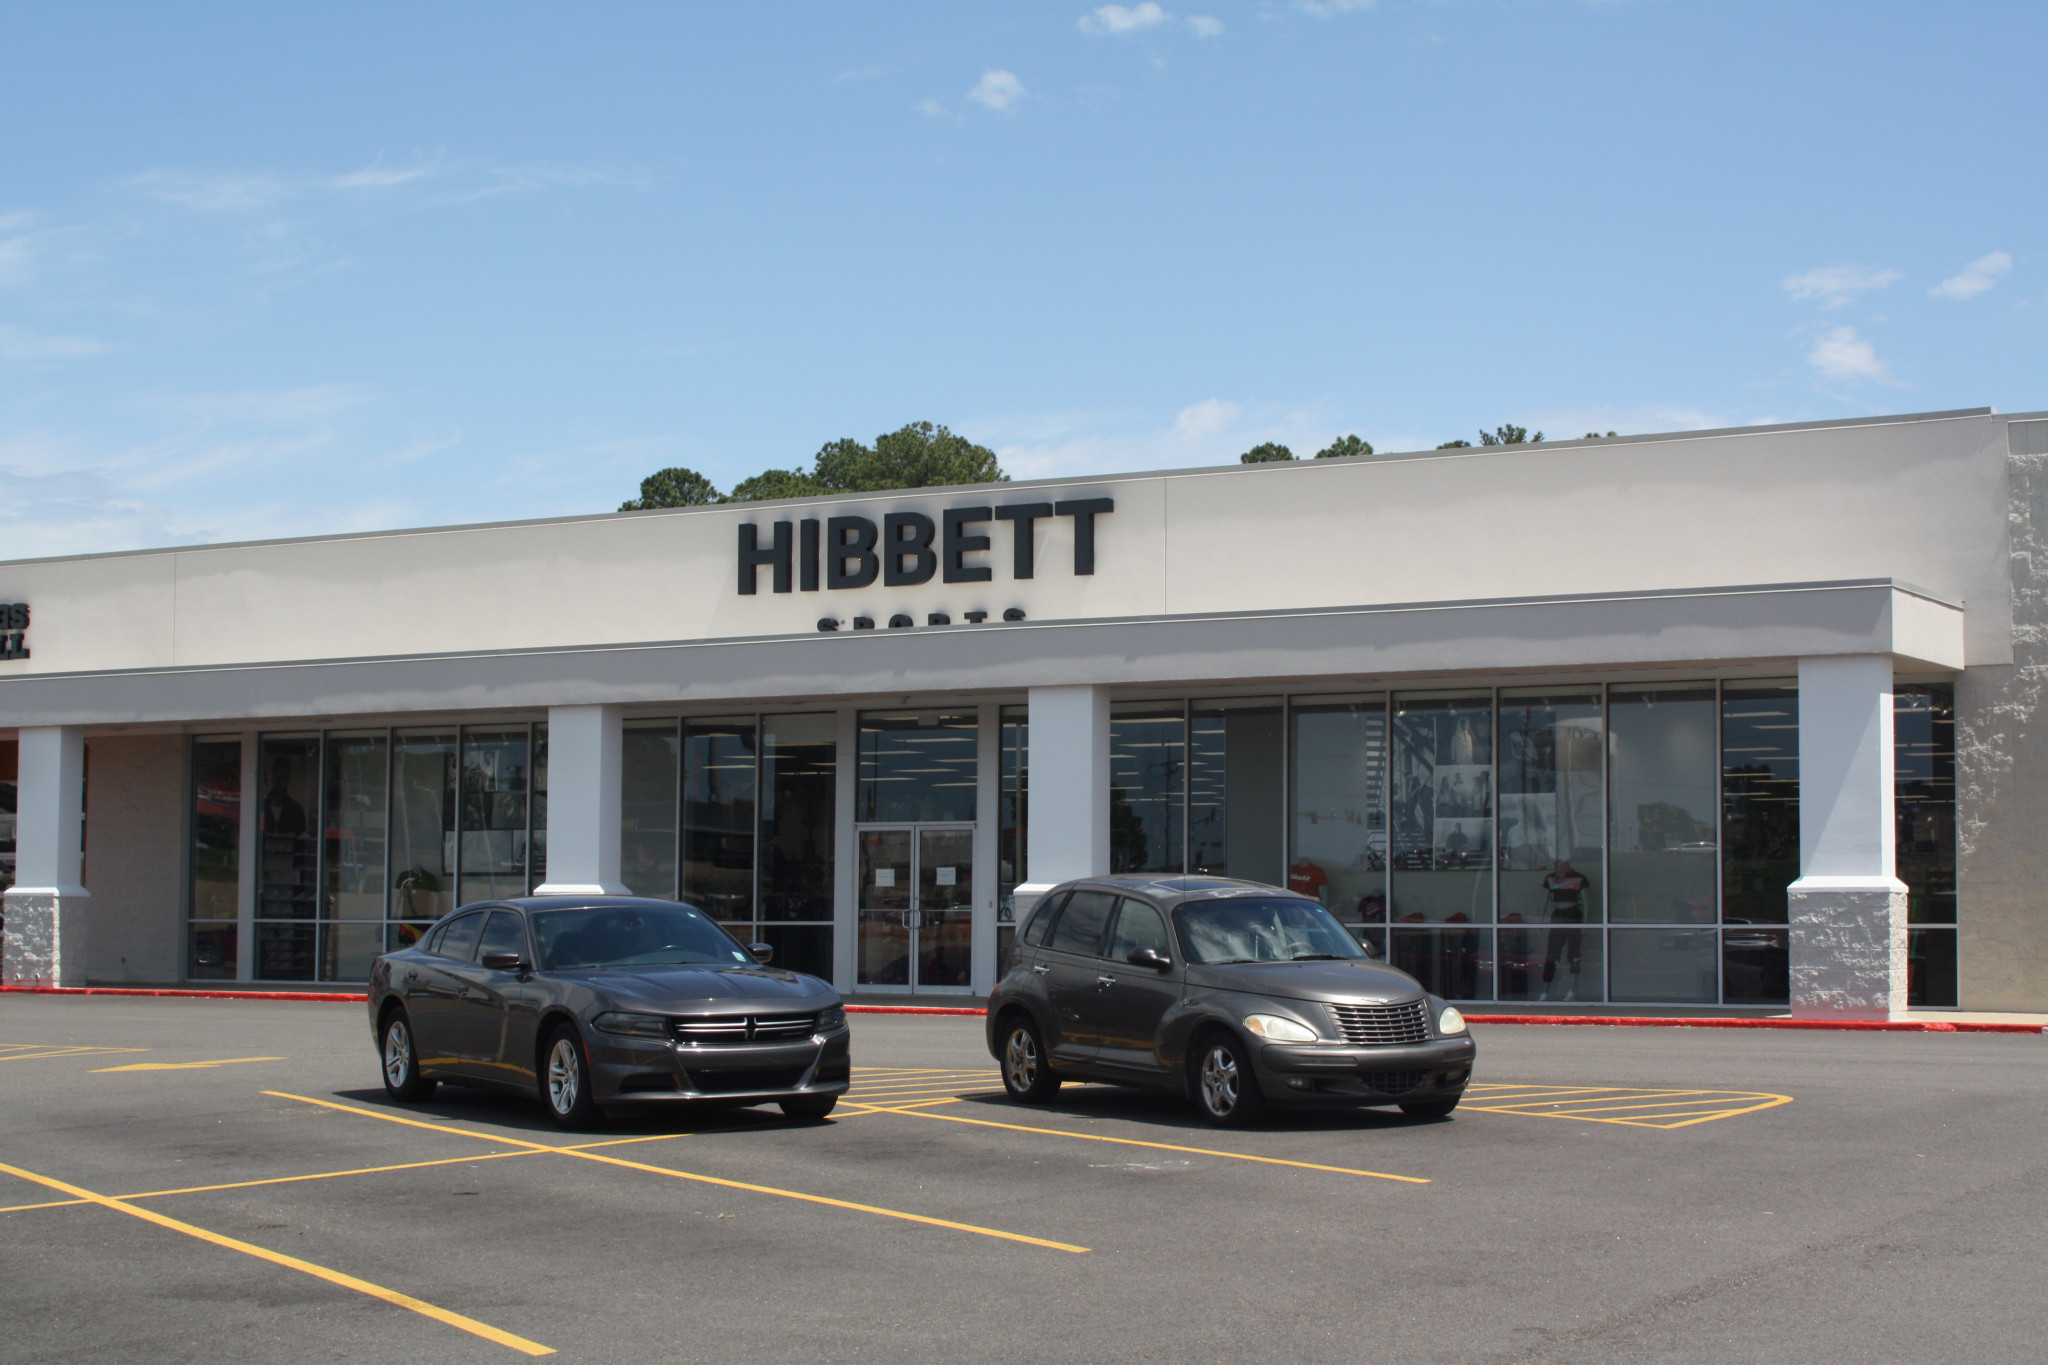 Now Hibbett Sports stands rebuilt with new signage, though the store is currently closed due to the coronavirus pandemic.